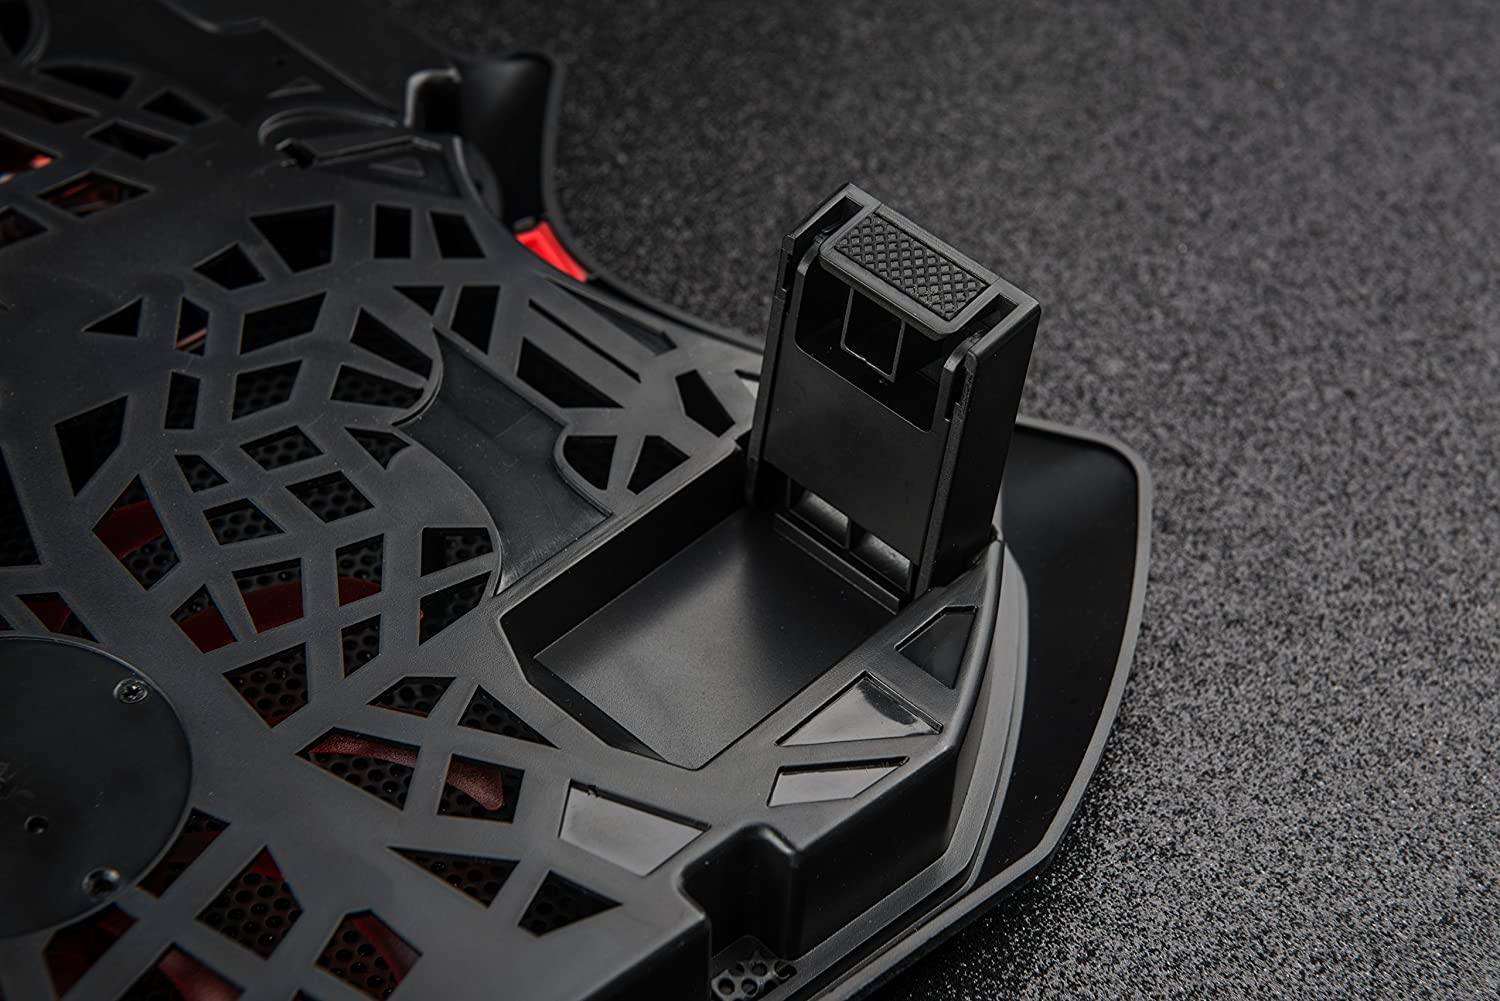 Xveon Gaming Aero Gaming Cooling Pad Cooling Pad for Laptops up to 17.3/sgm520